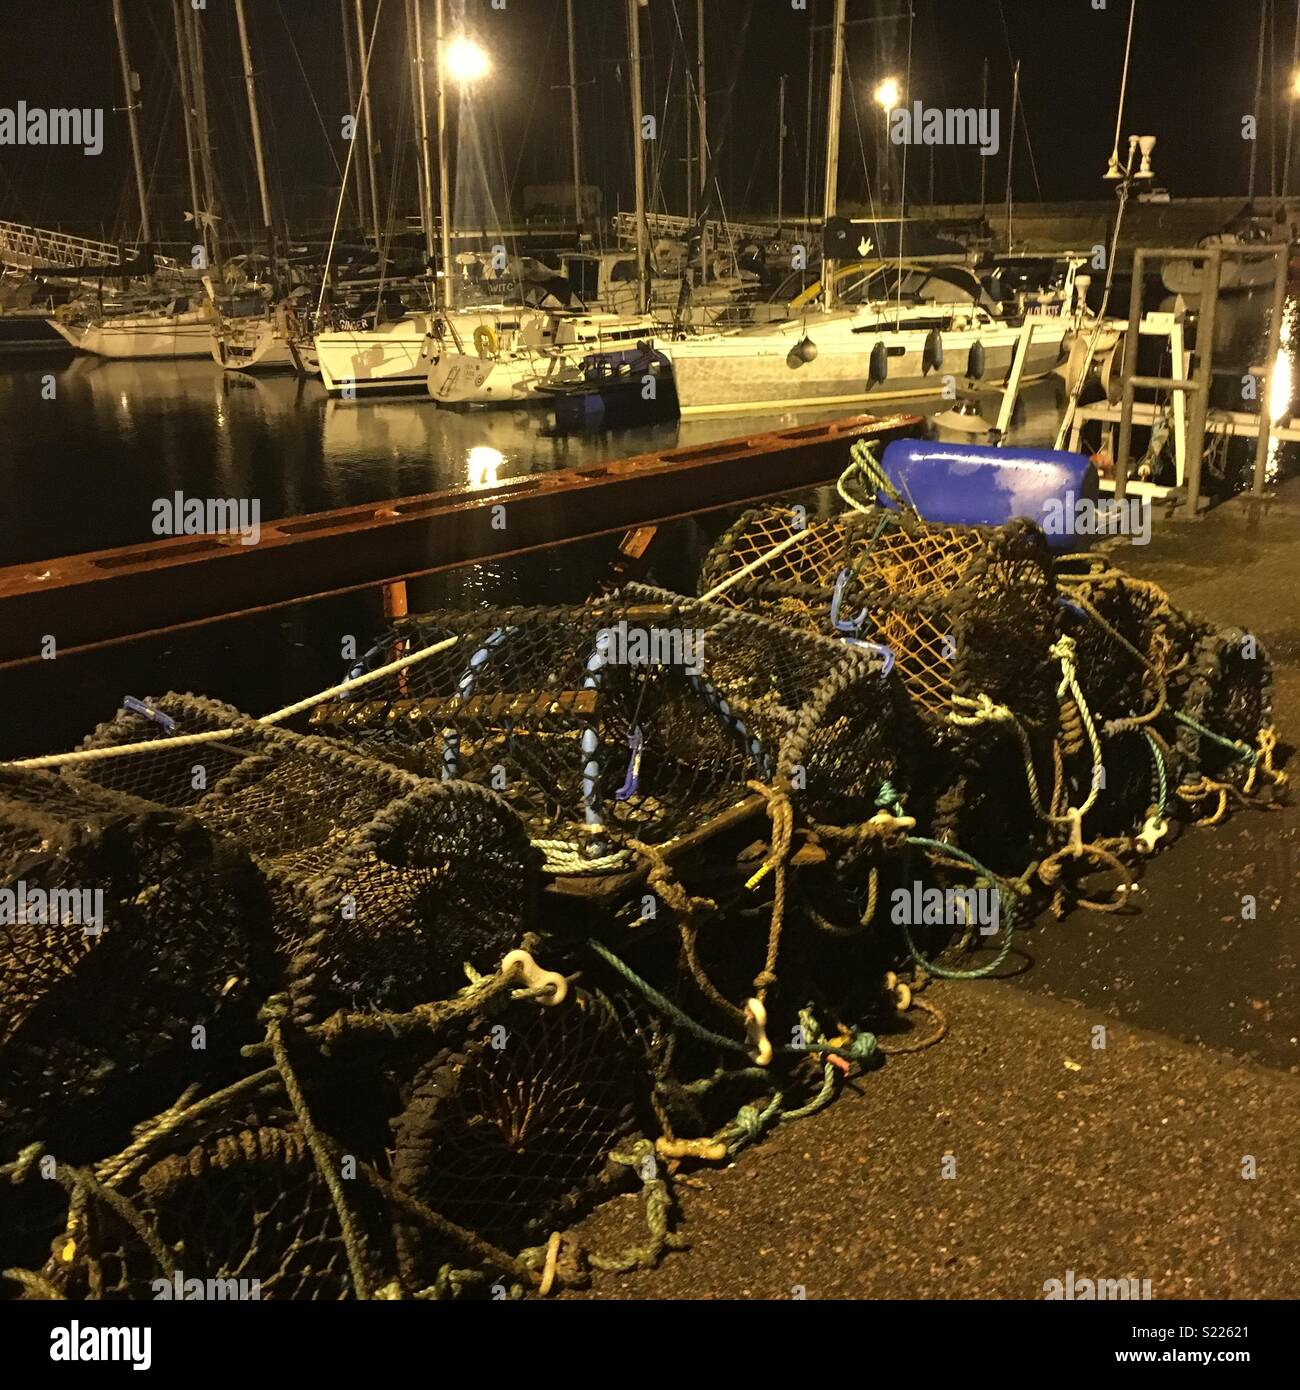 Nairn harbour - Stock Image